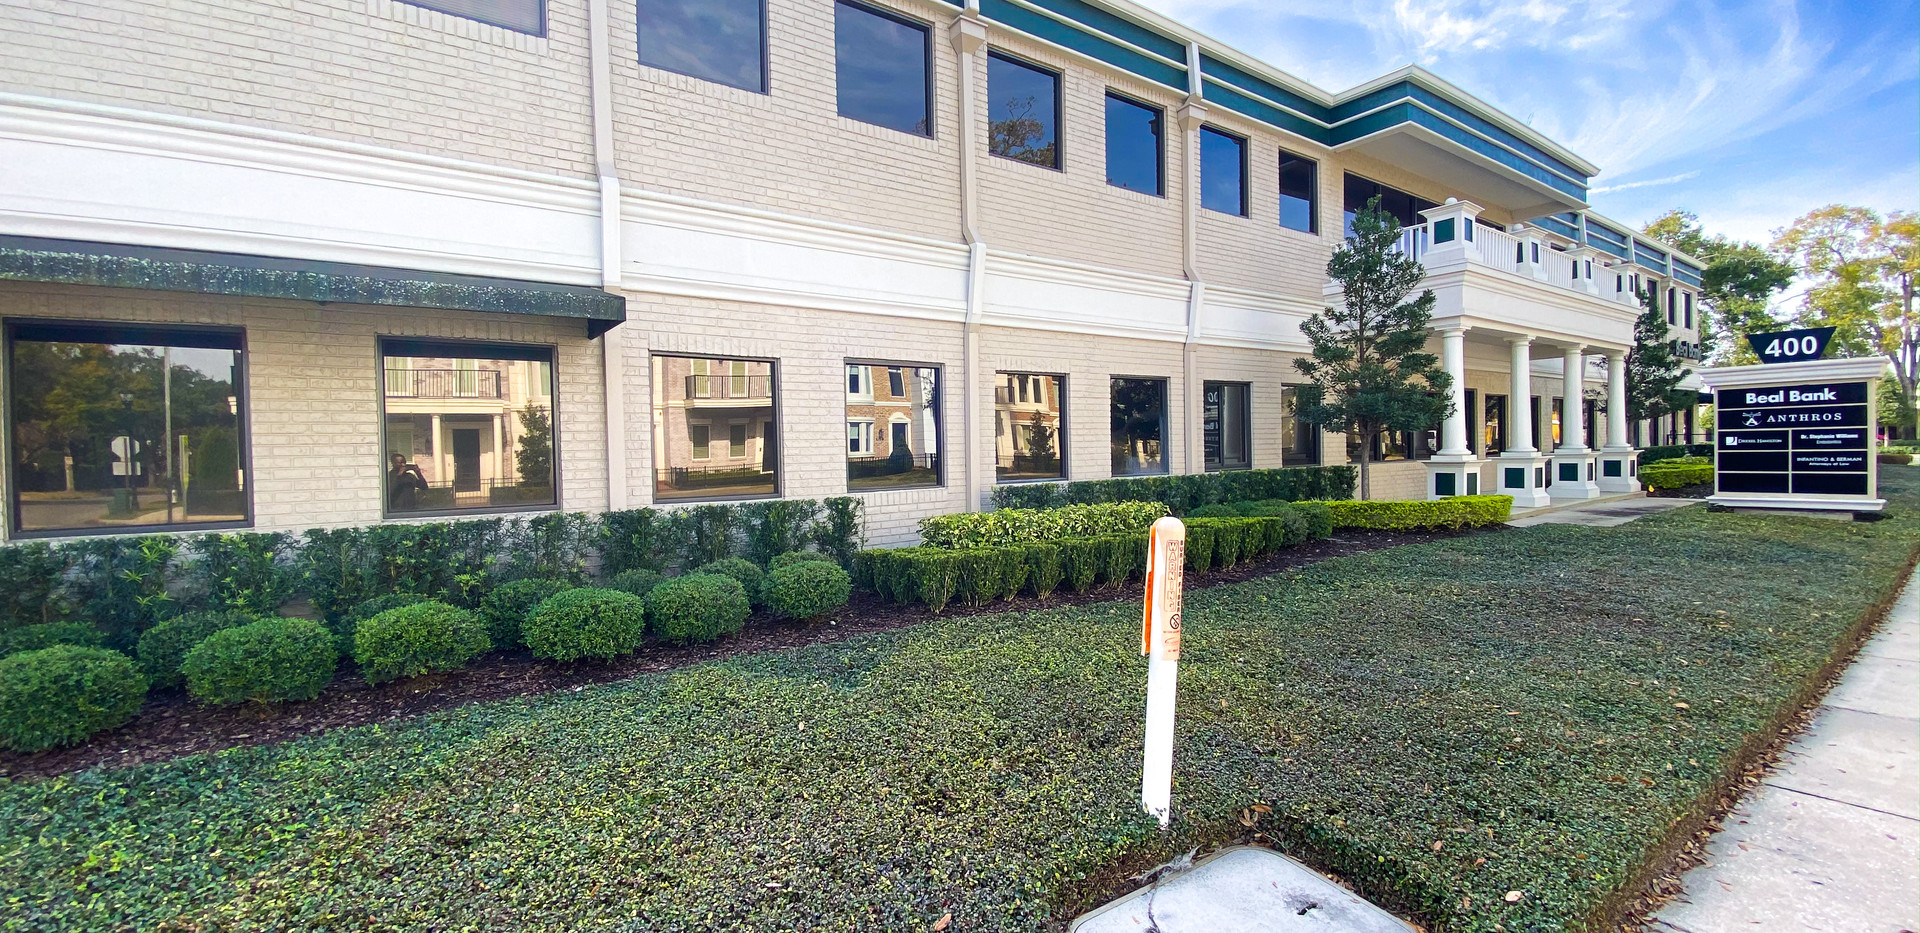 West Morse Commercial/Office Space